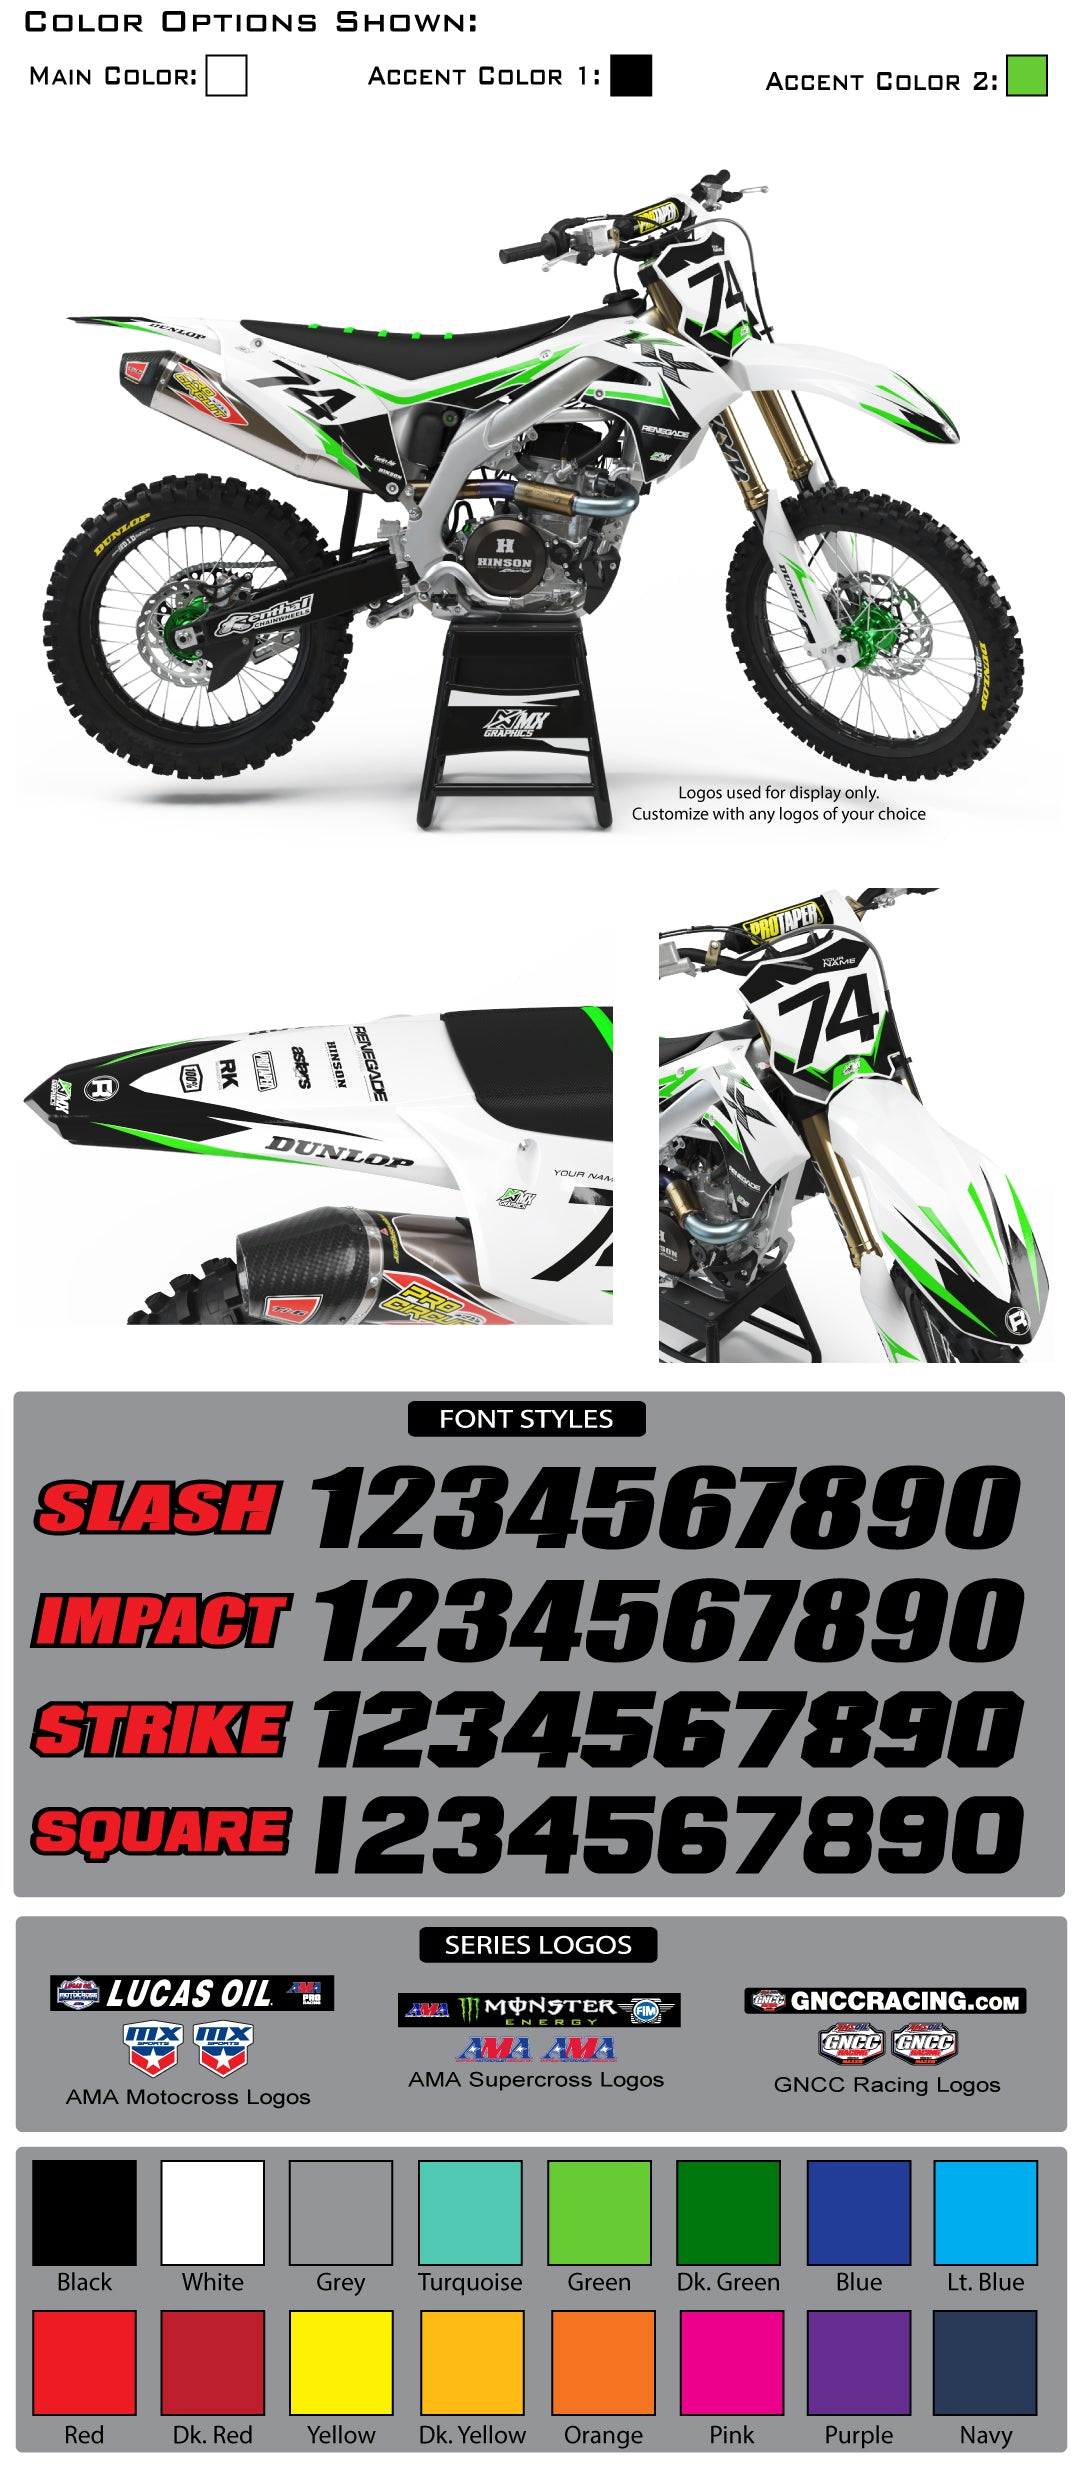 Kawasaki MX26 Graphic Kit